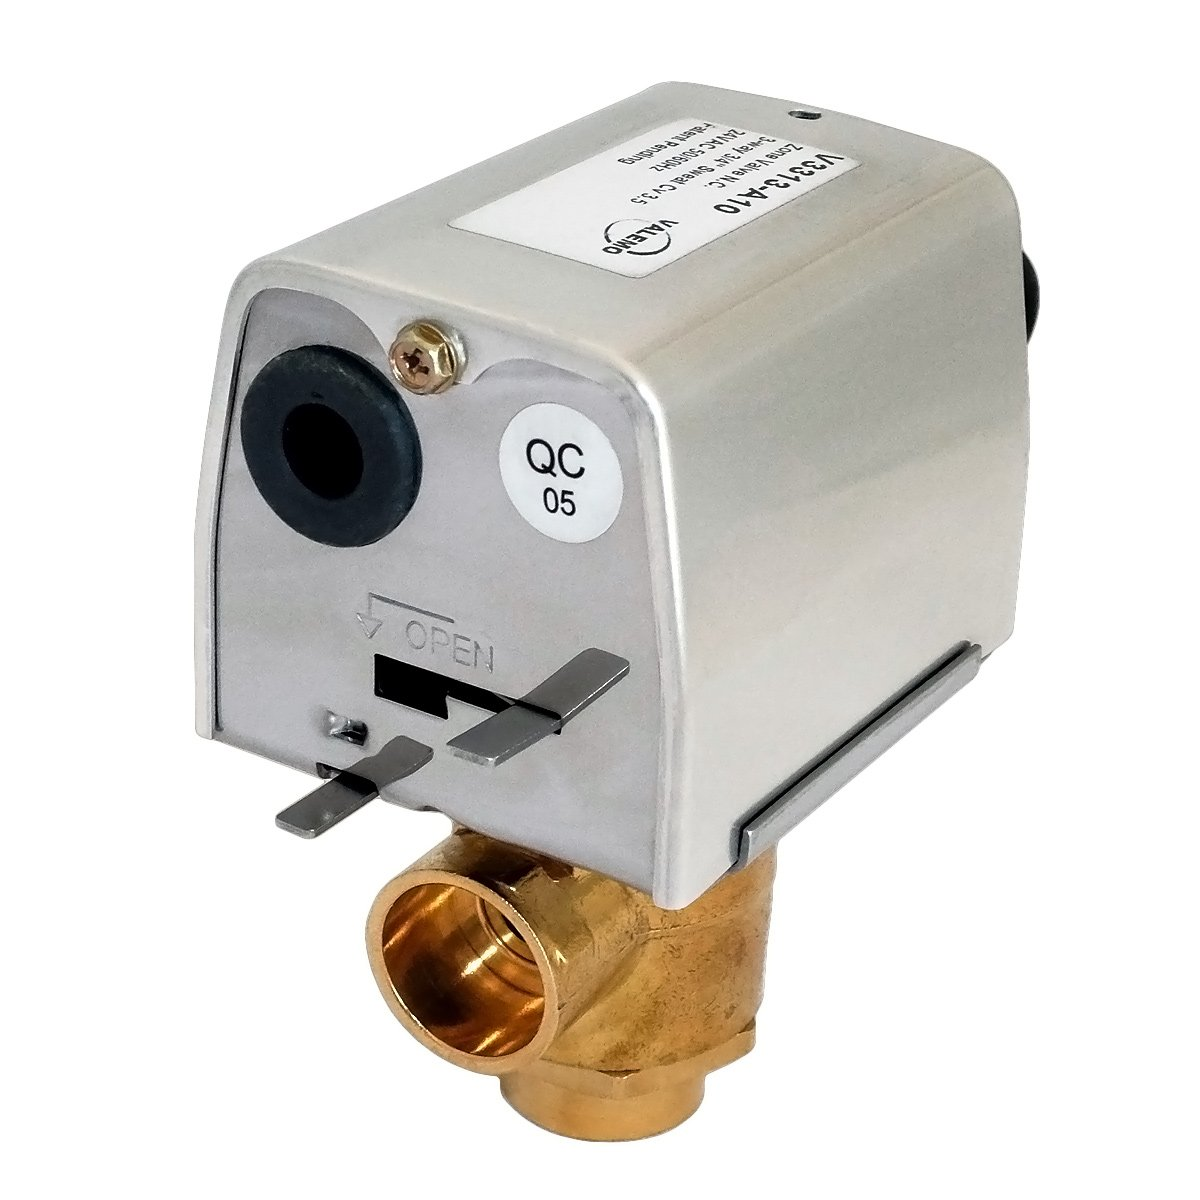 Valemo V3313-A10 Motorized Zone Valve, 3-way 3/4'', Sweat, 24 VAC, No End Switch